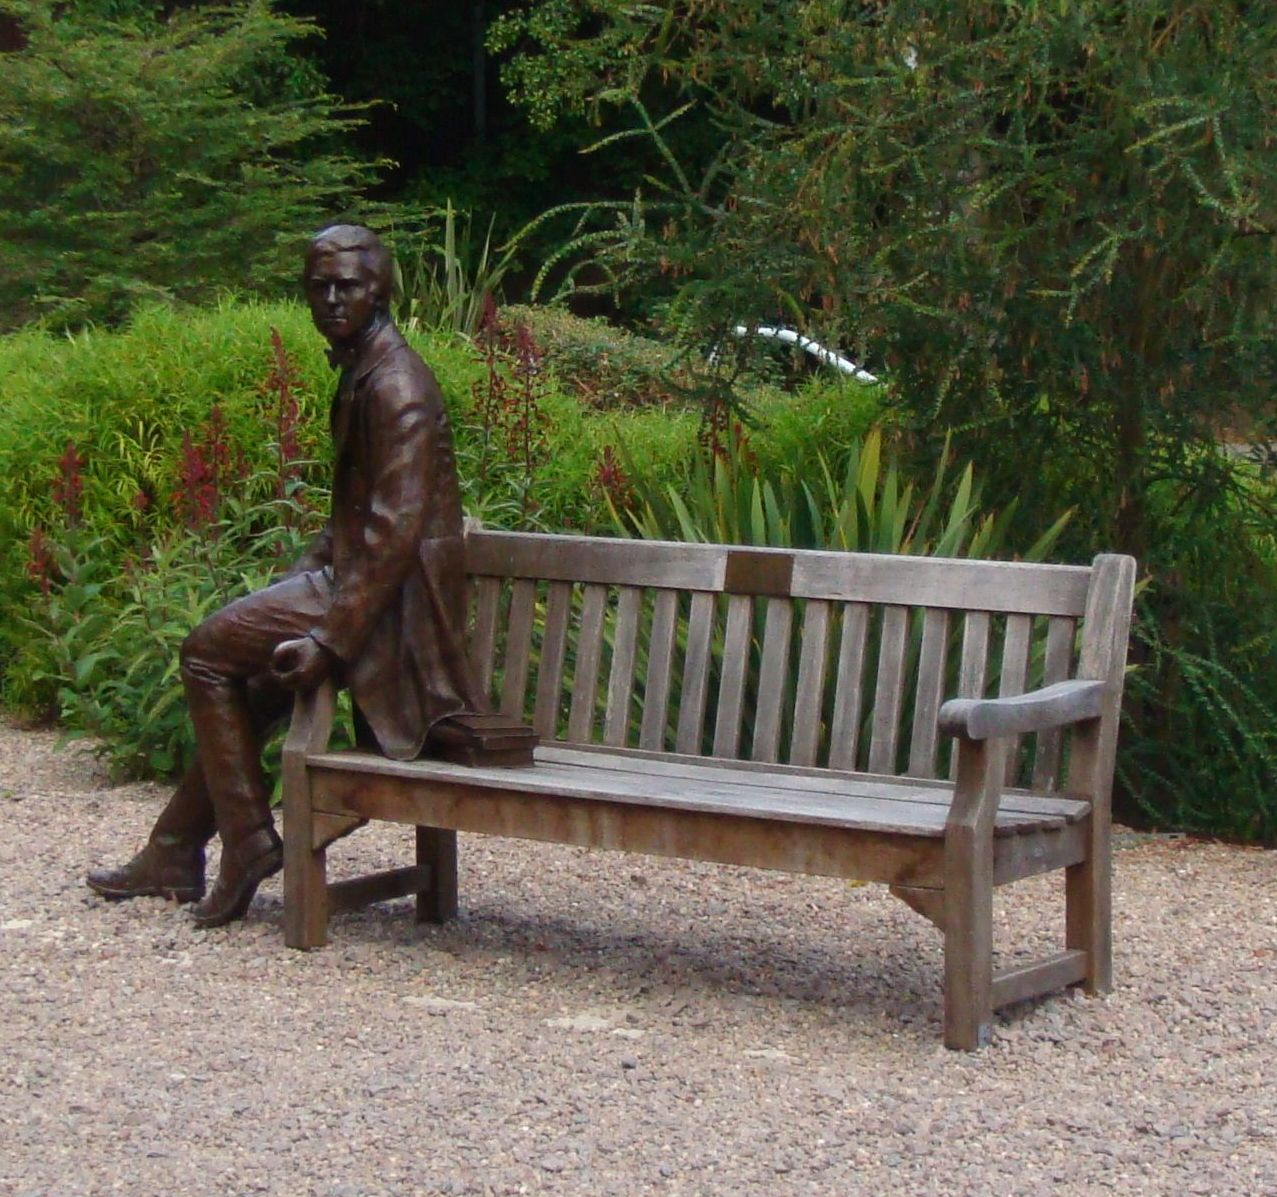 Bronze sculpture of Charles Darwin as a young man by Anthony Smith. The sculpture, which was unveiled in 2009, is located in the grounds of Christ's College, Cambridge (Image: Used with the kind permission of the Master and Fellows of Christ's College, Cambridge)